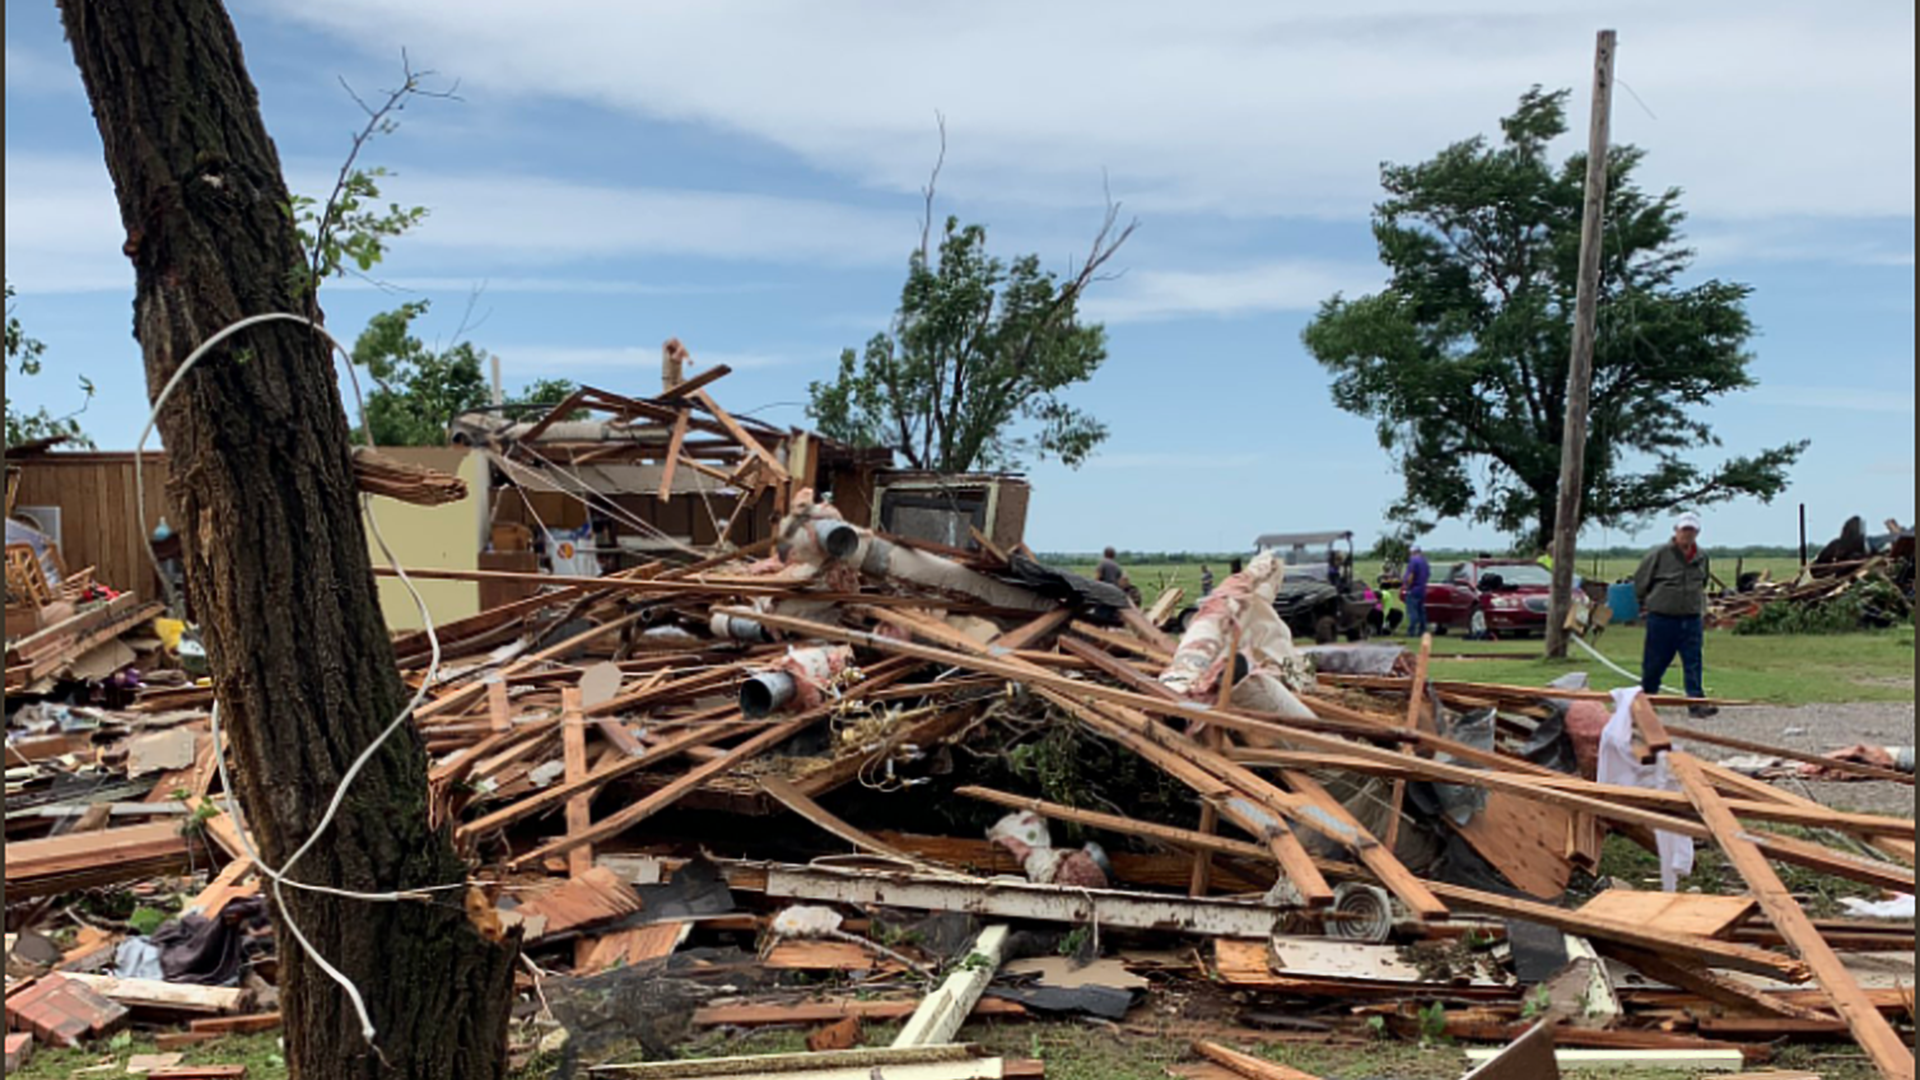 Damage survey confirms an EF2 tornado caused the damage east of Geronimo early Saturday.